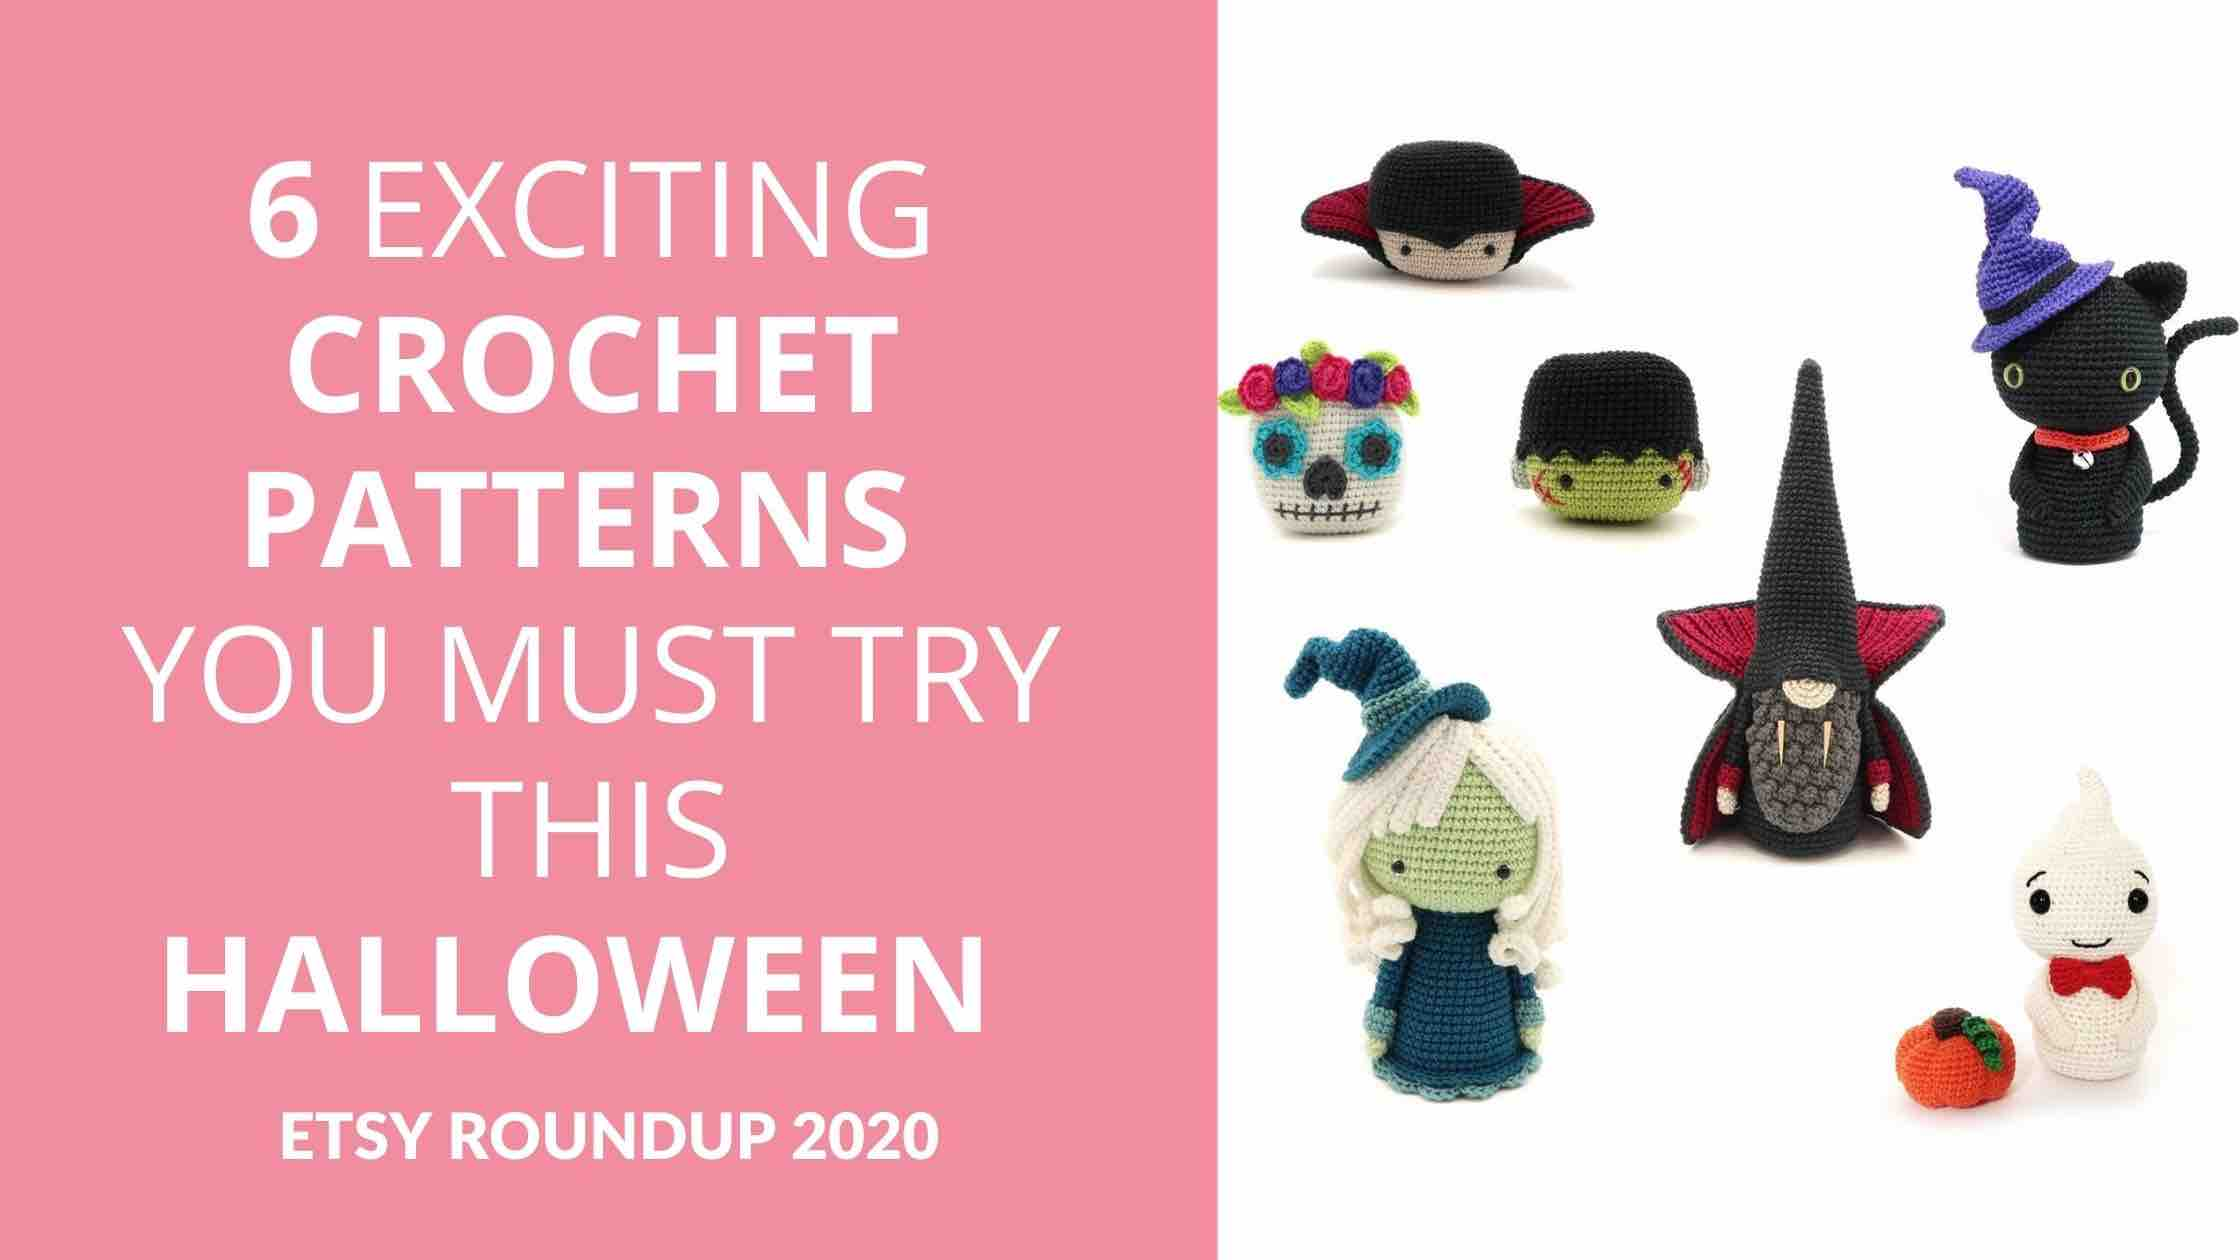 Exciting Crochet Patterns You Must Try This Halloween Start Crochet (1)